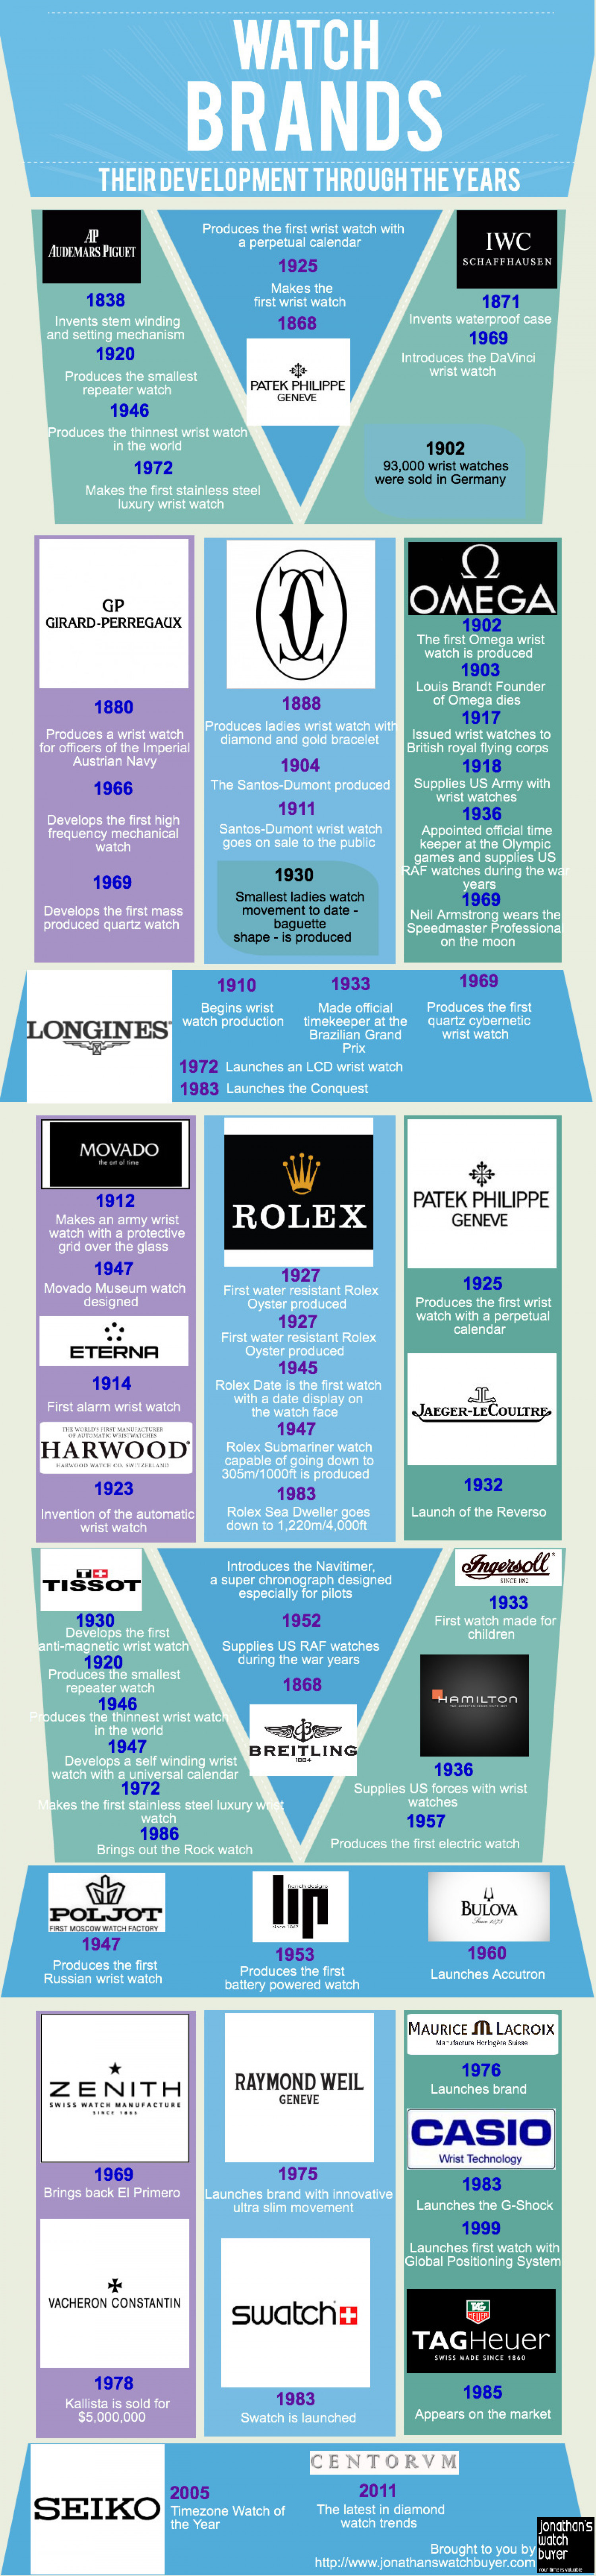 Watch Brands & Their Development Through The Years Infographic